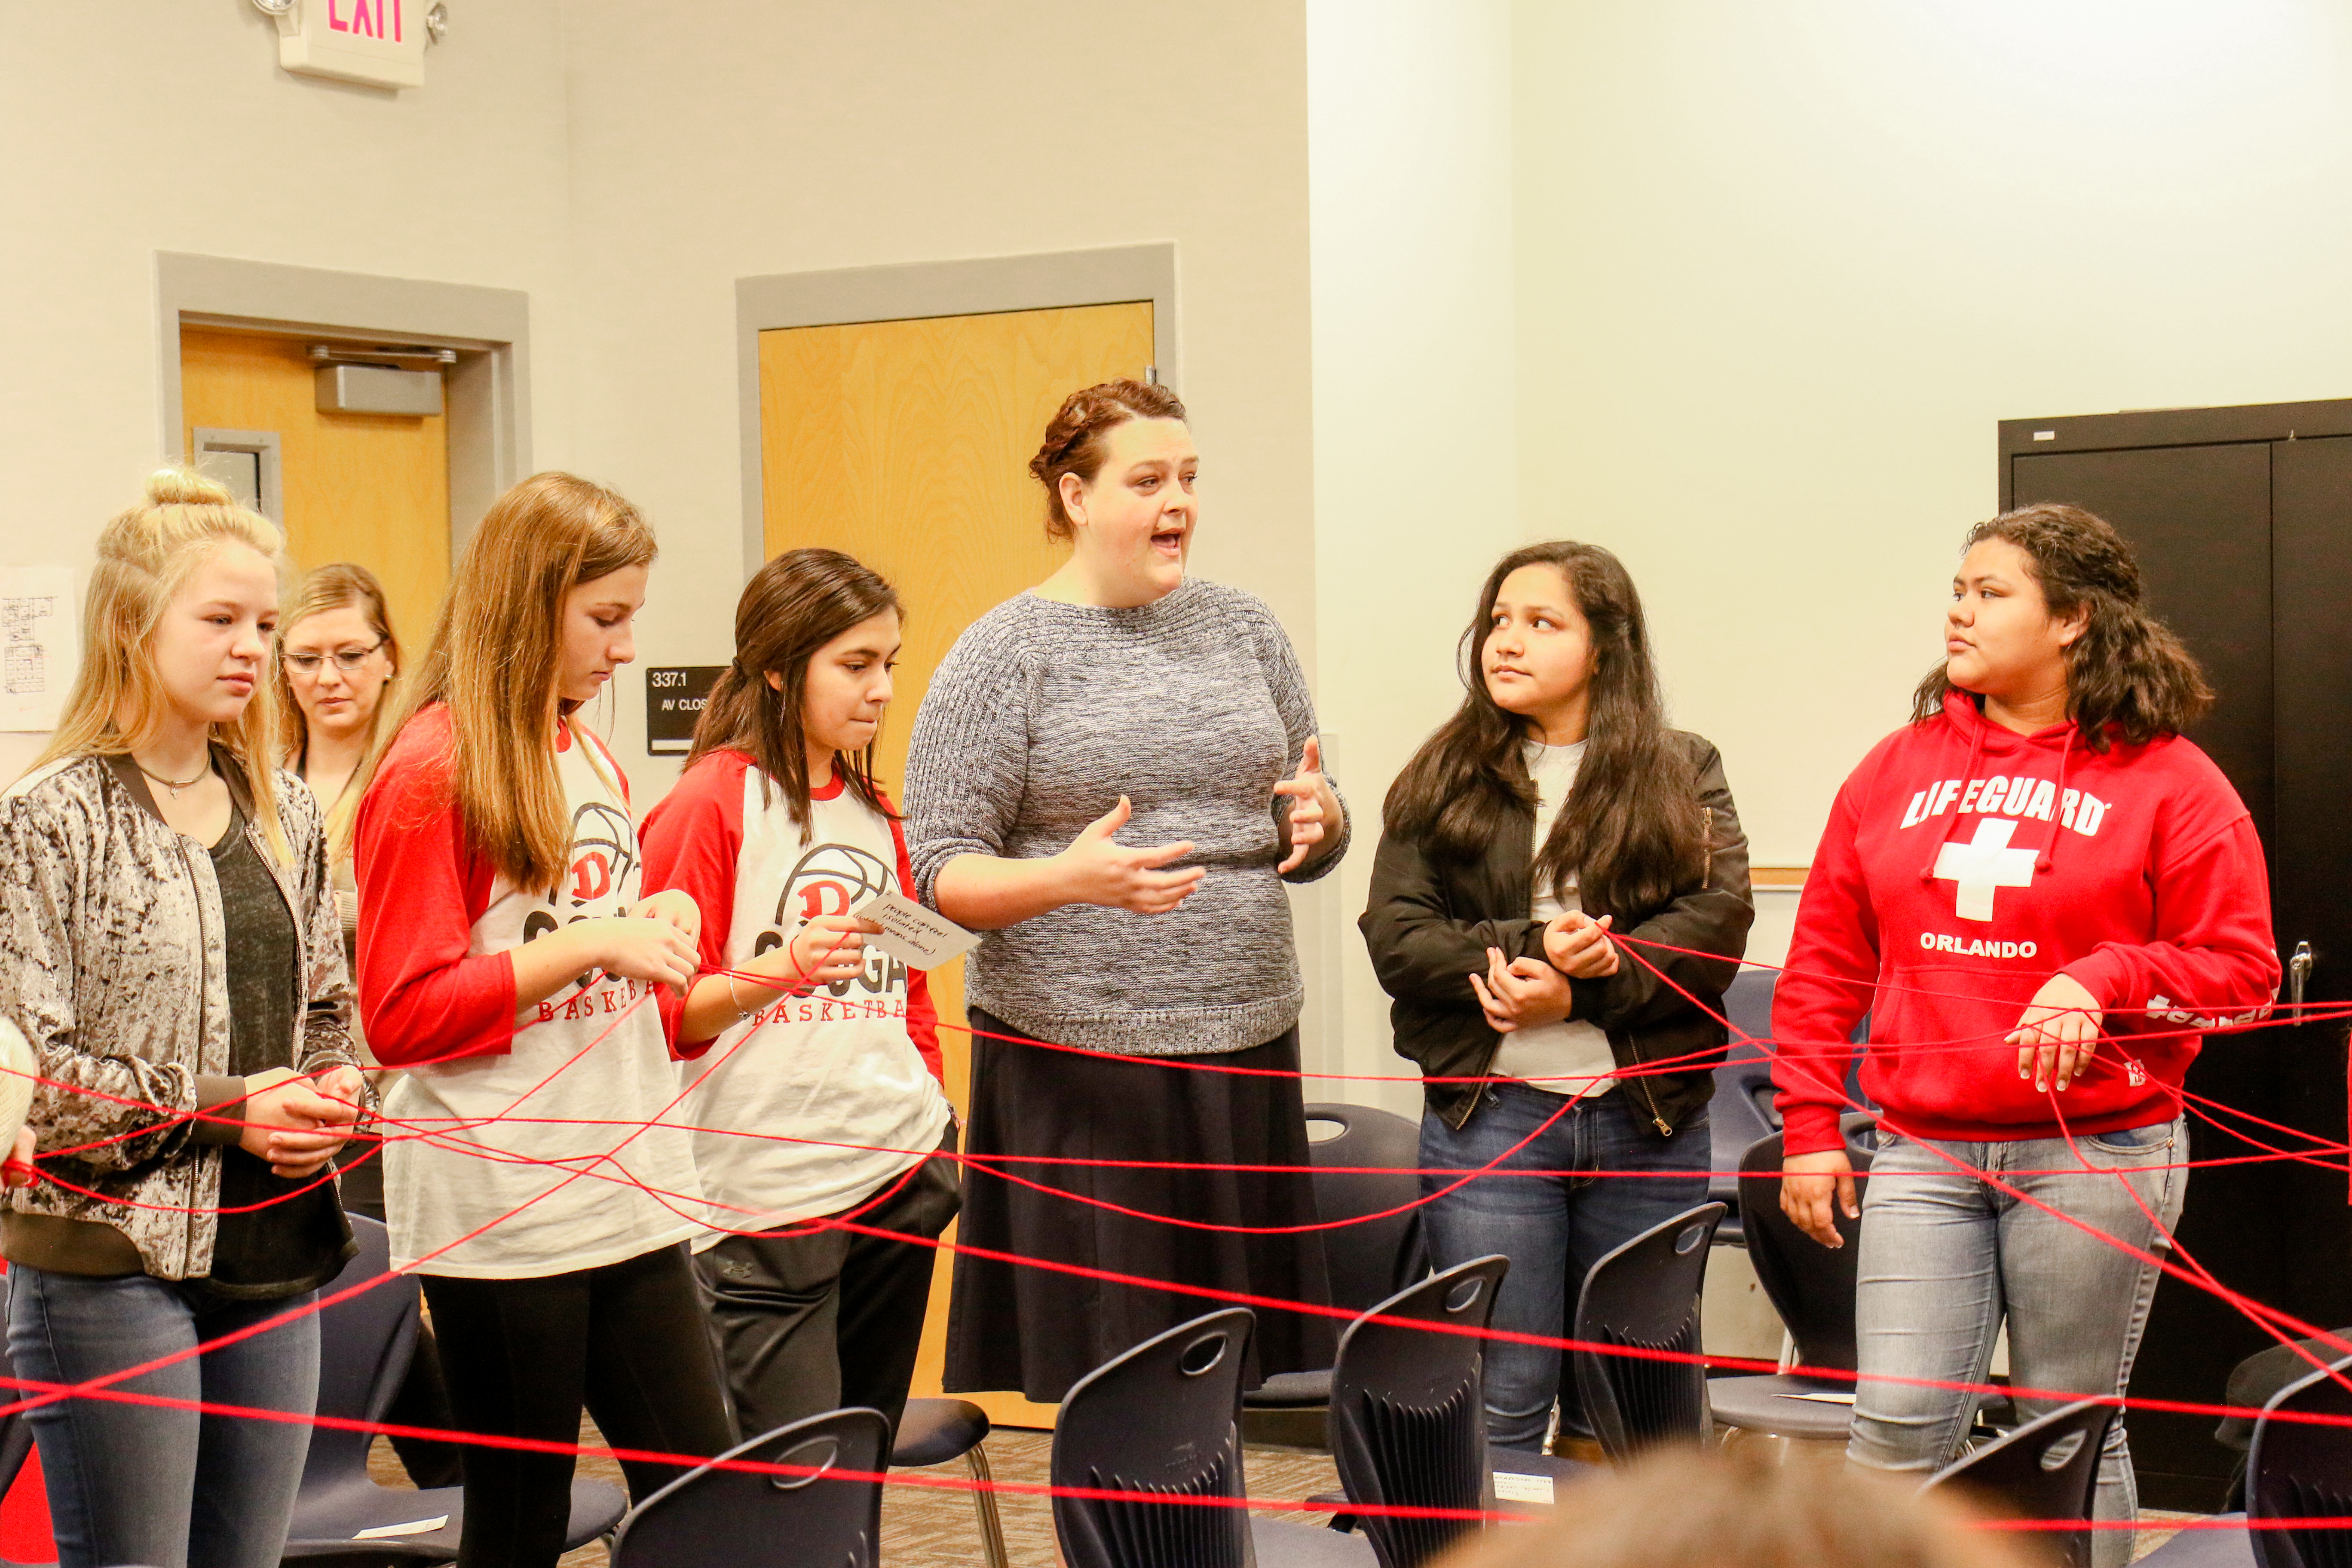 Basey Conducts Web Activity with Students